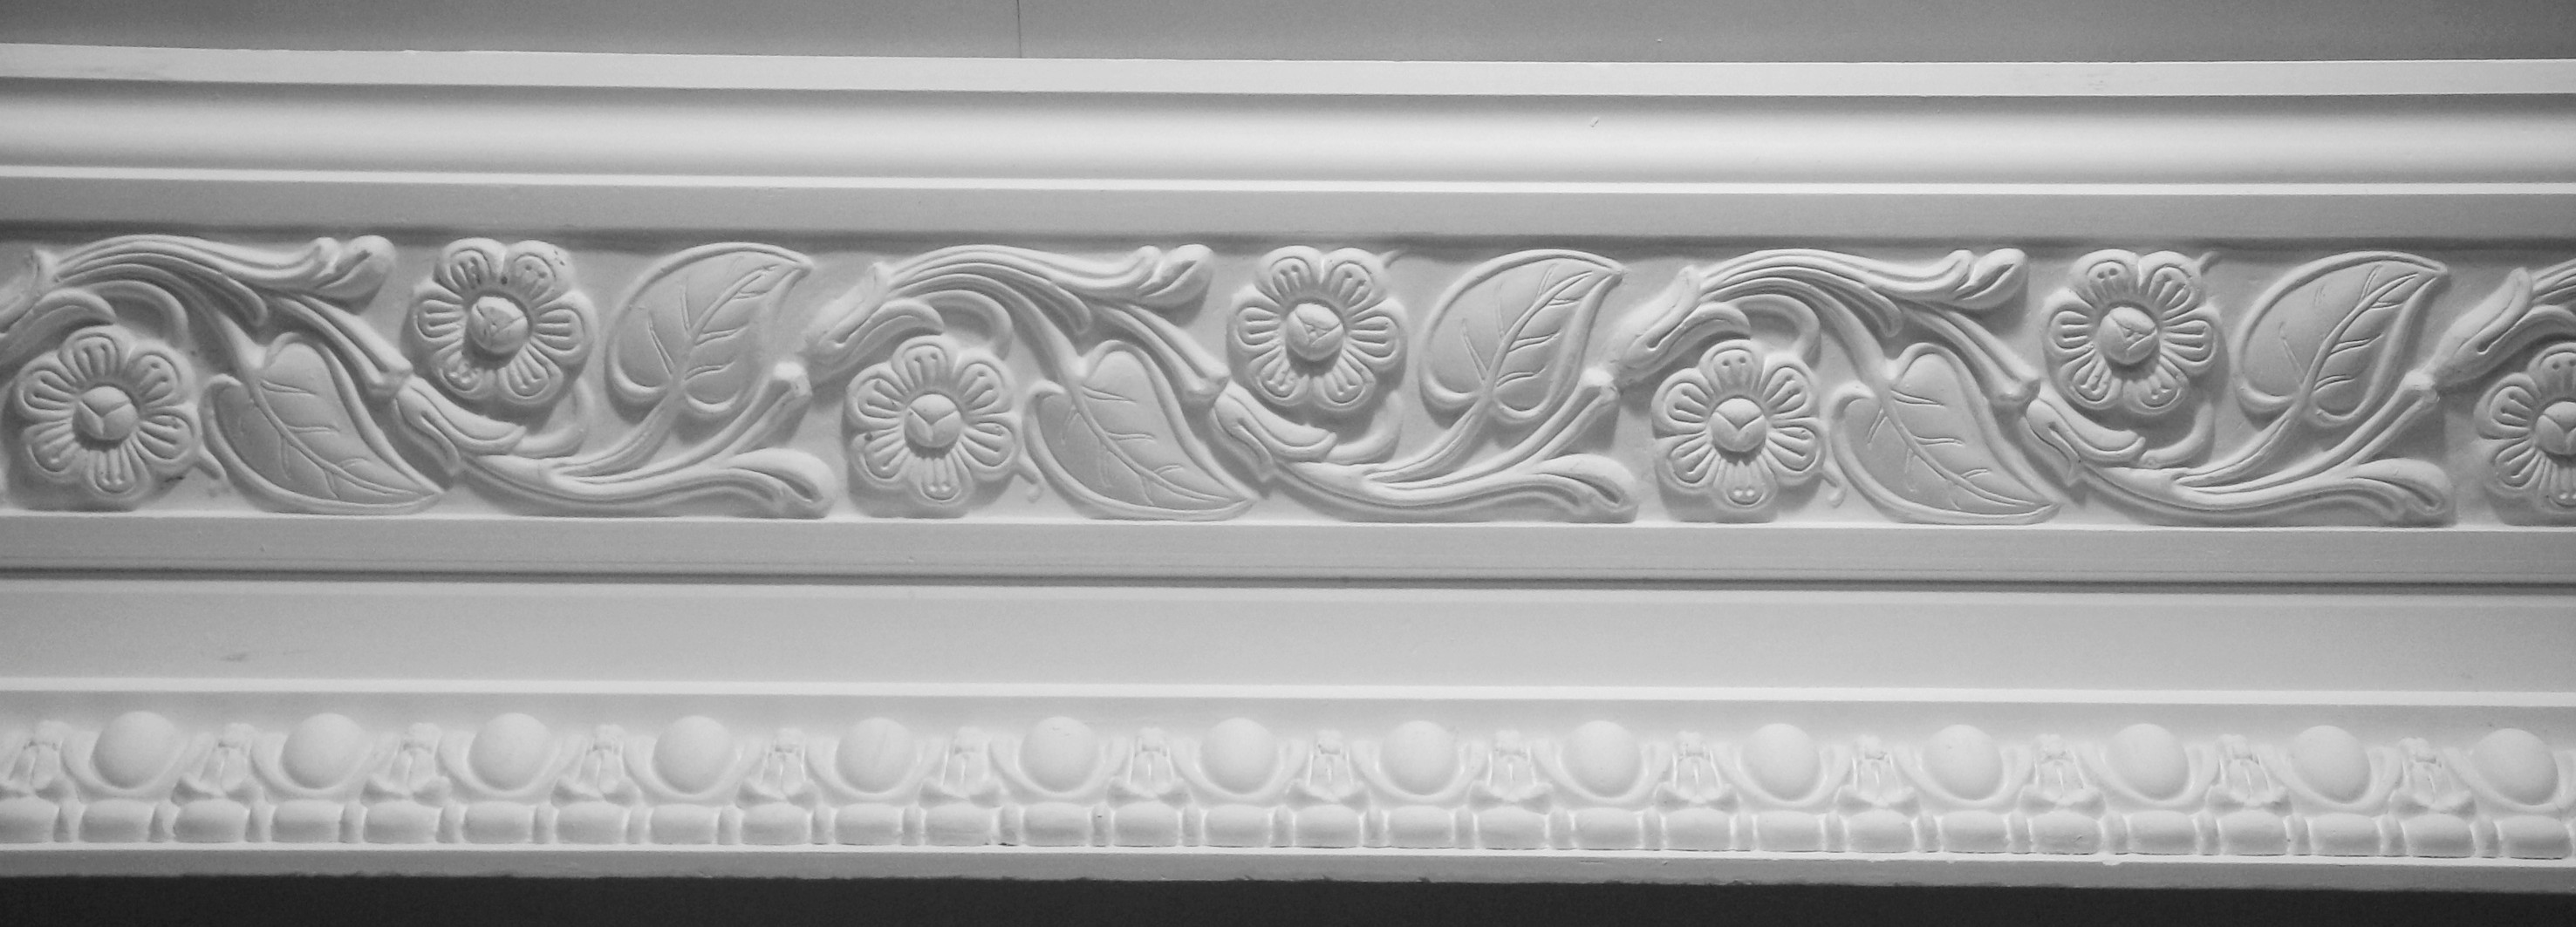 Arts crafts cornices 1910 1920 for Ceiling cornice ideas